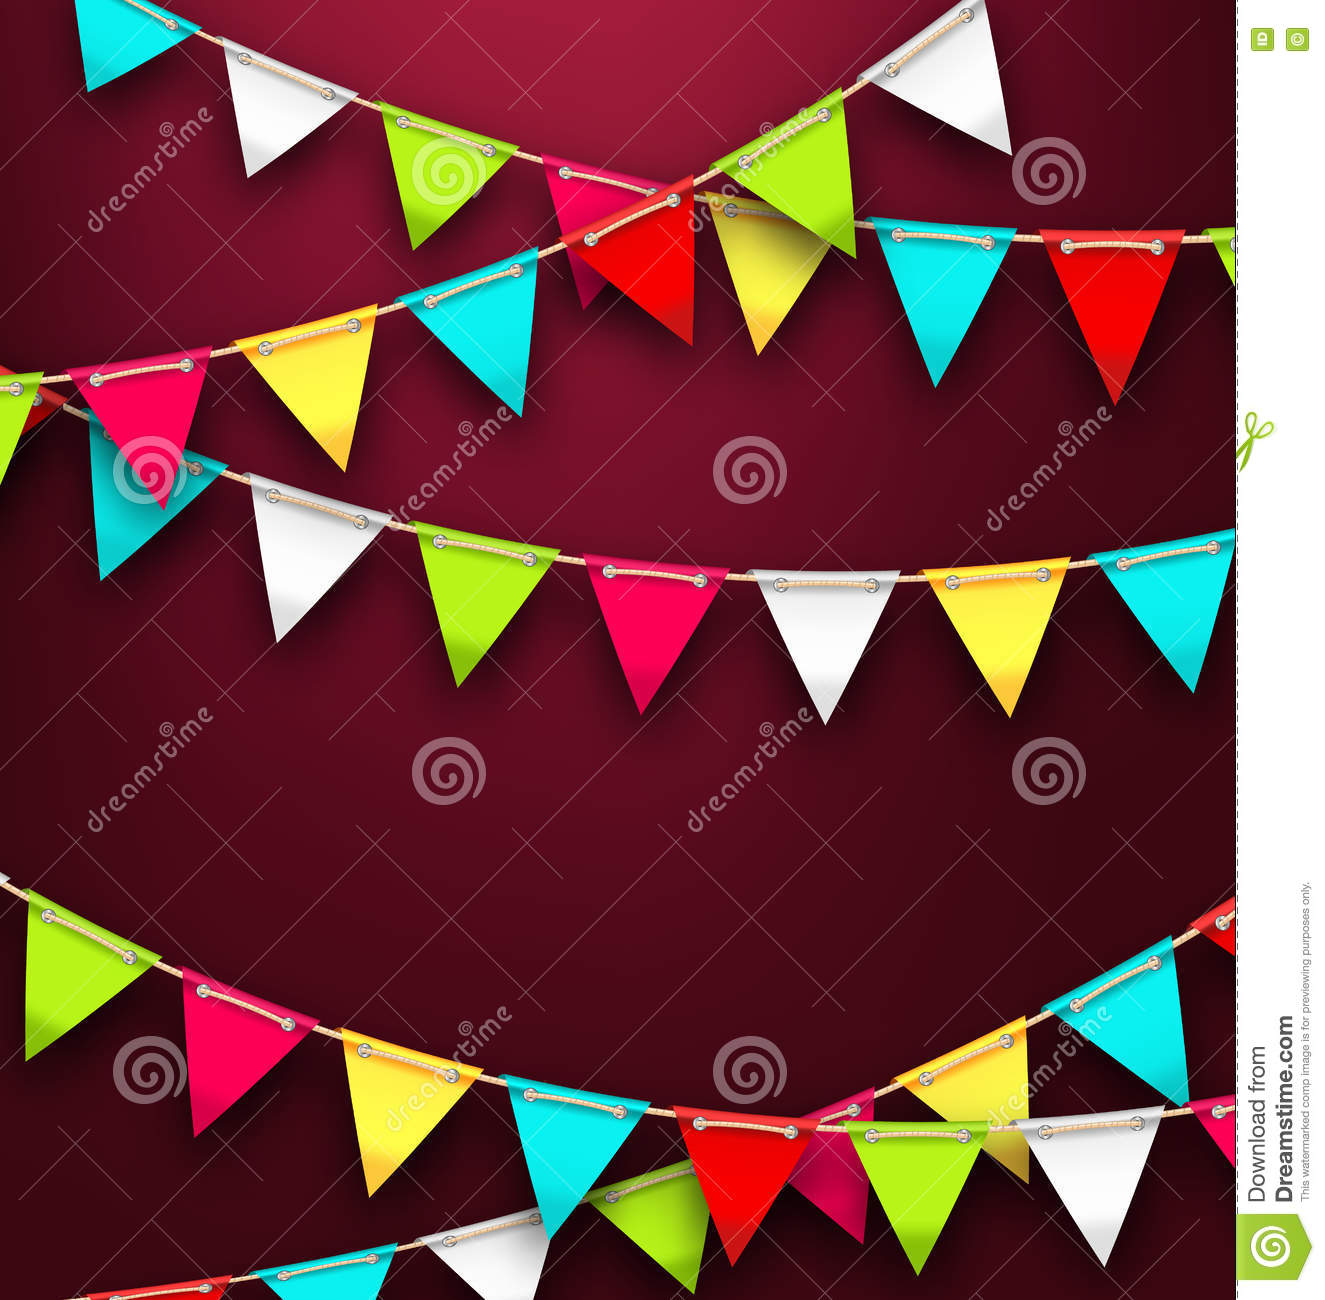 Party Background With Colorful Bunting Flags For Holidays Stock